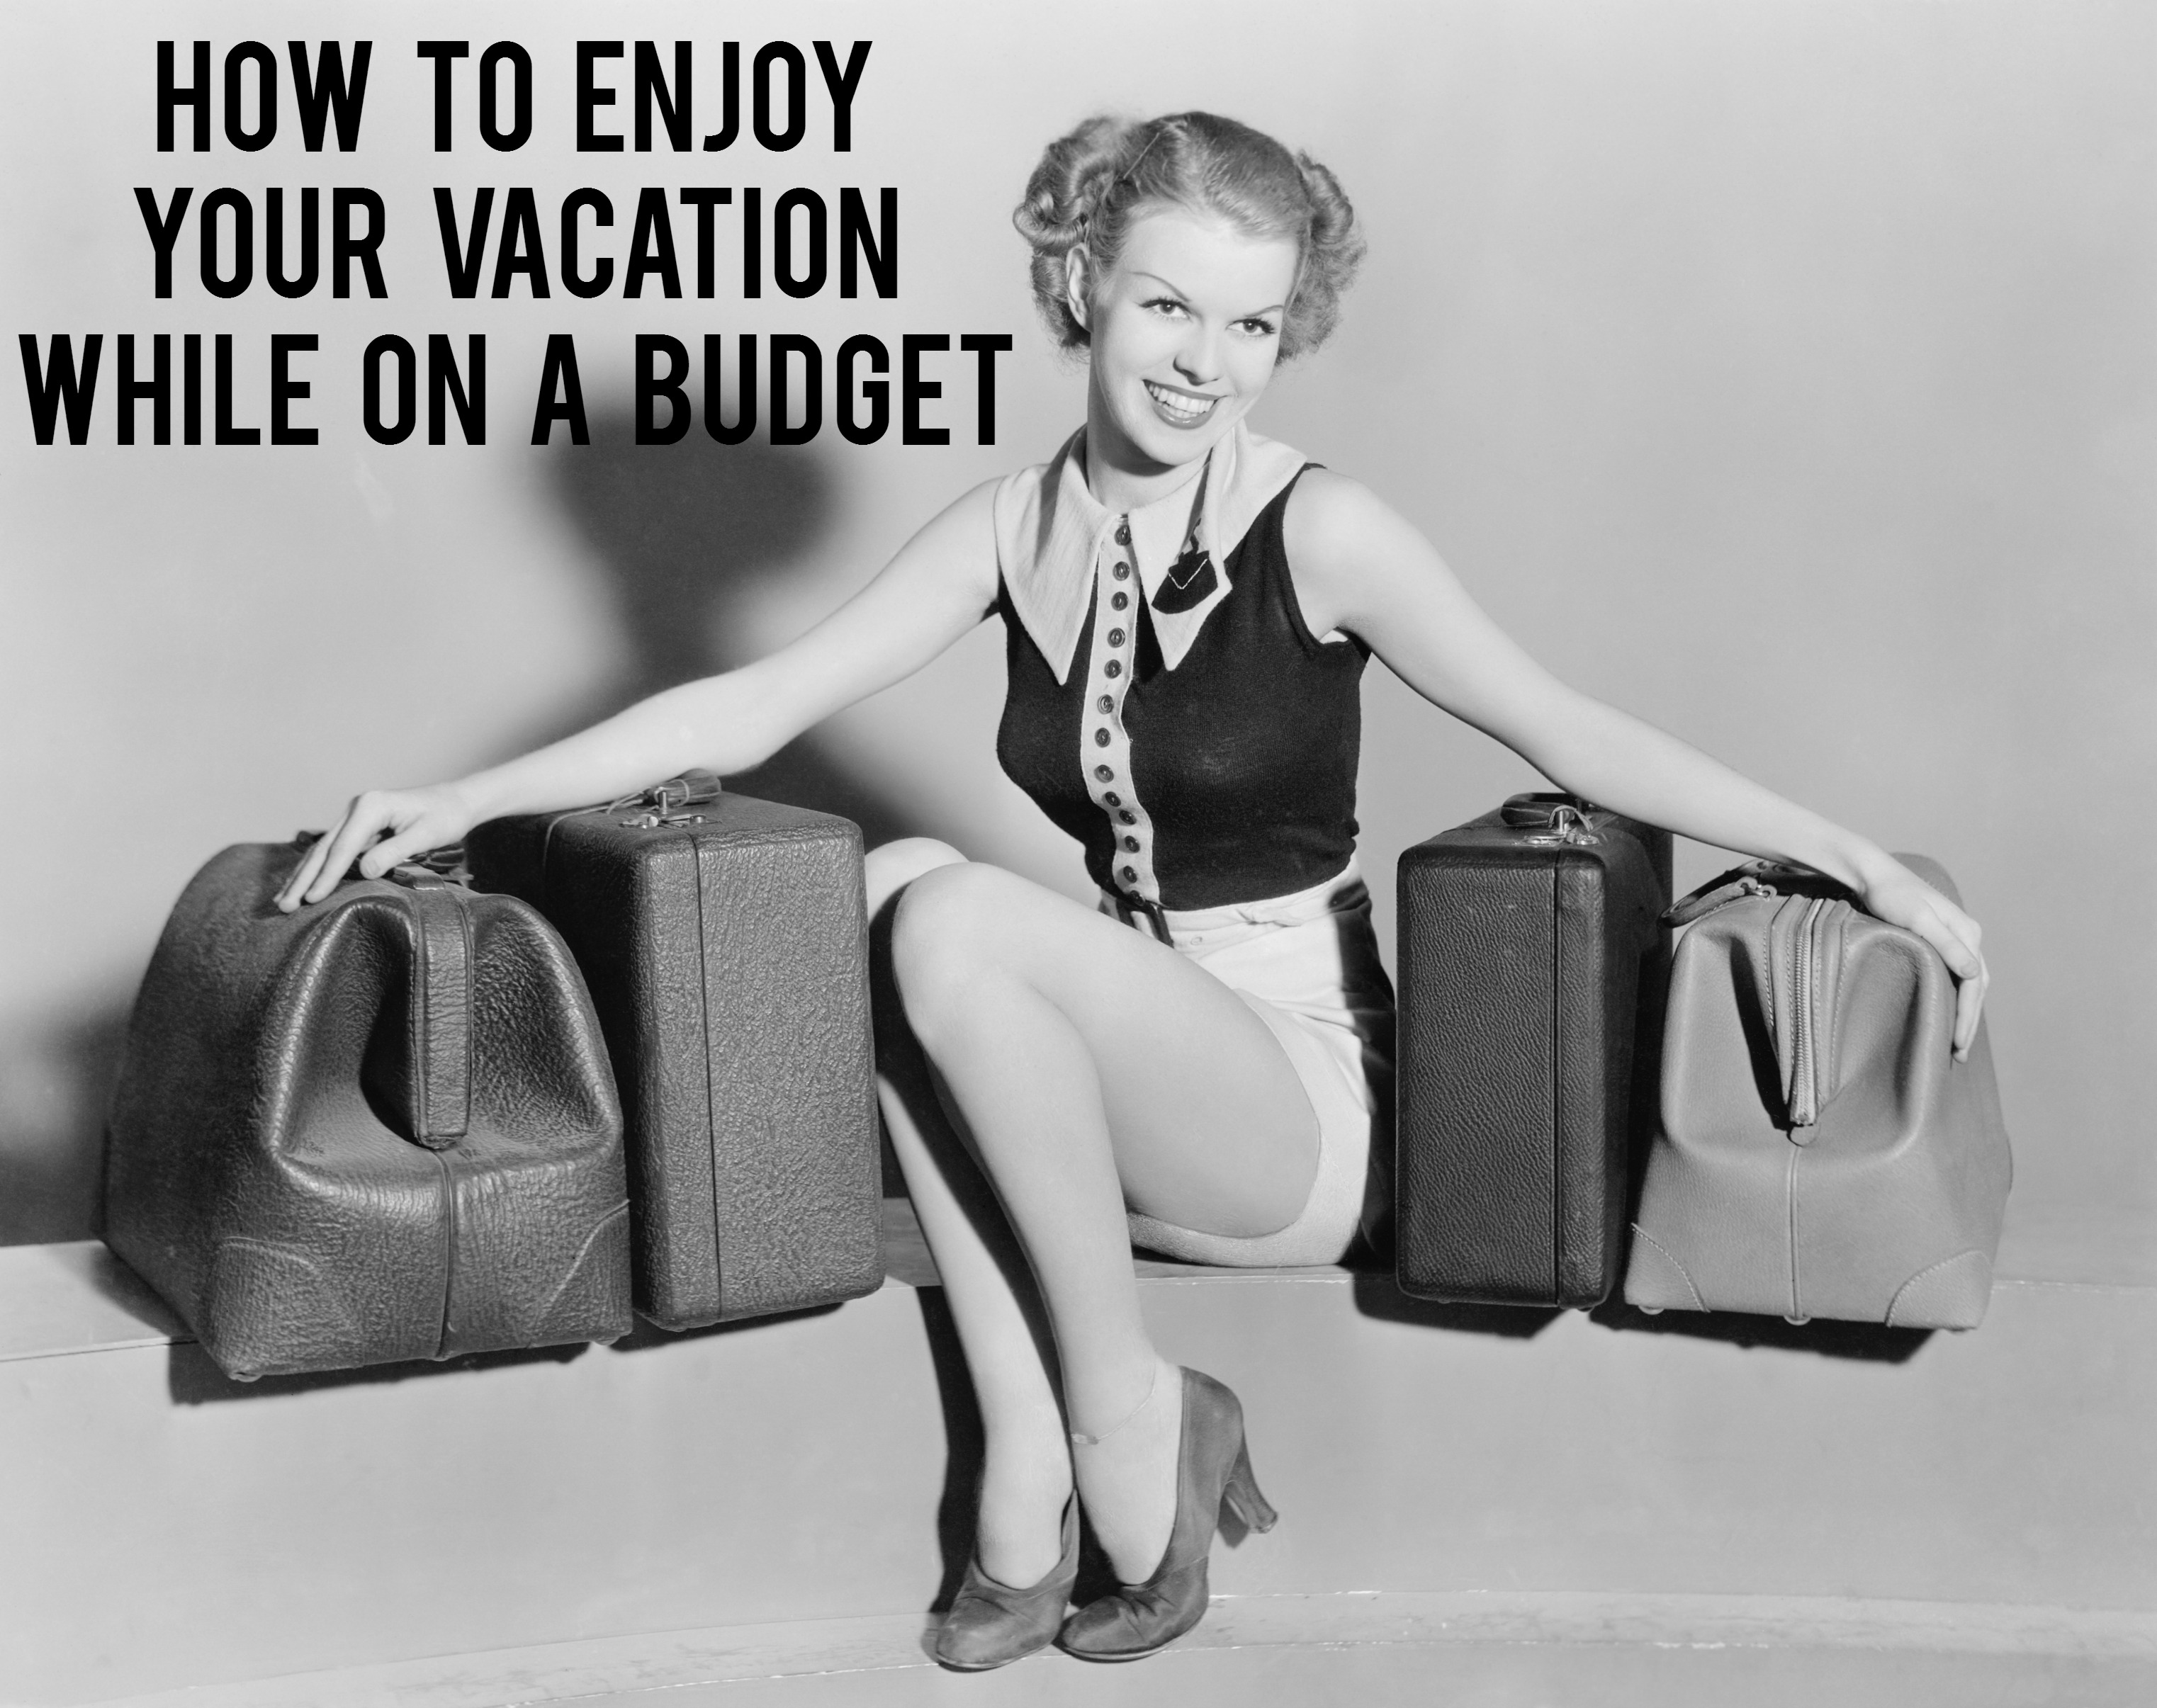 How To Enjoy Your Vacation While On a Budget | AndThenWeSaved.com